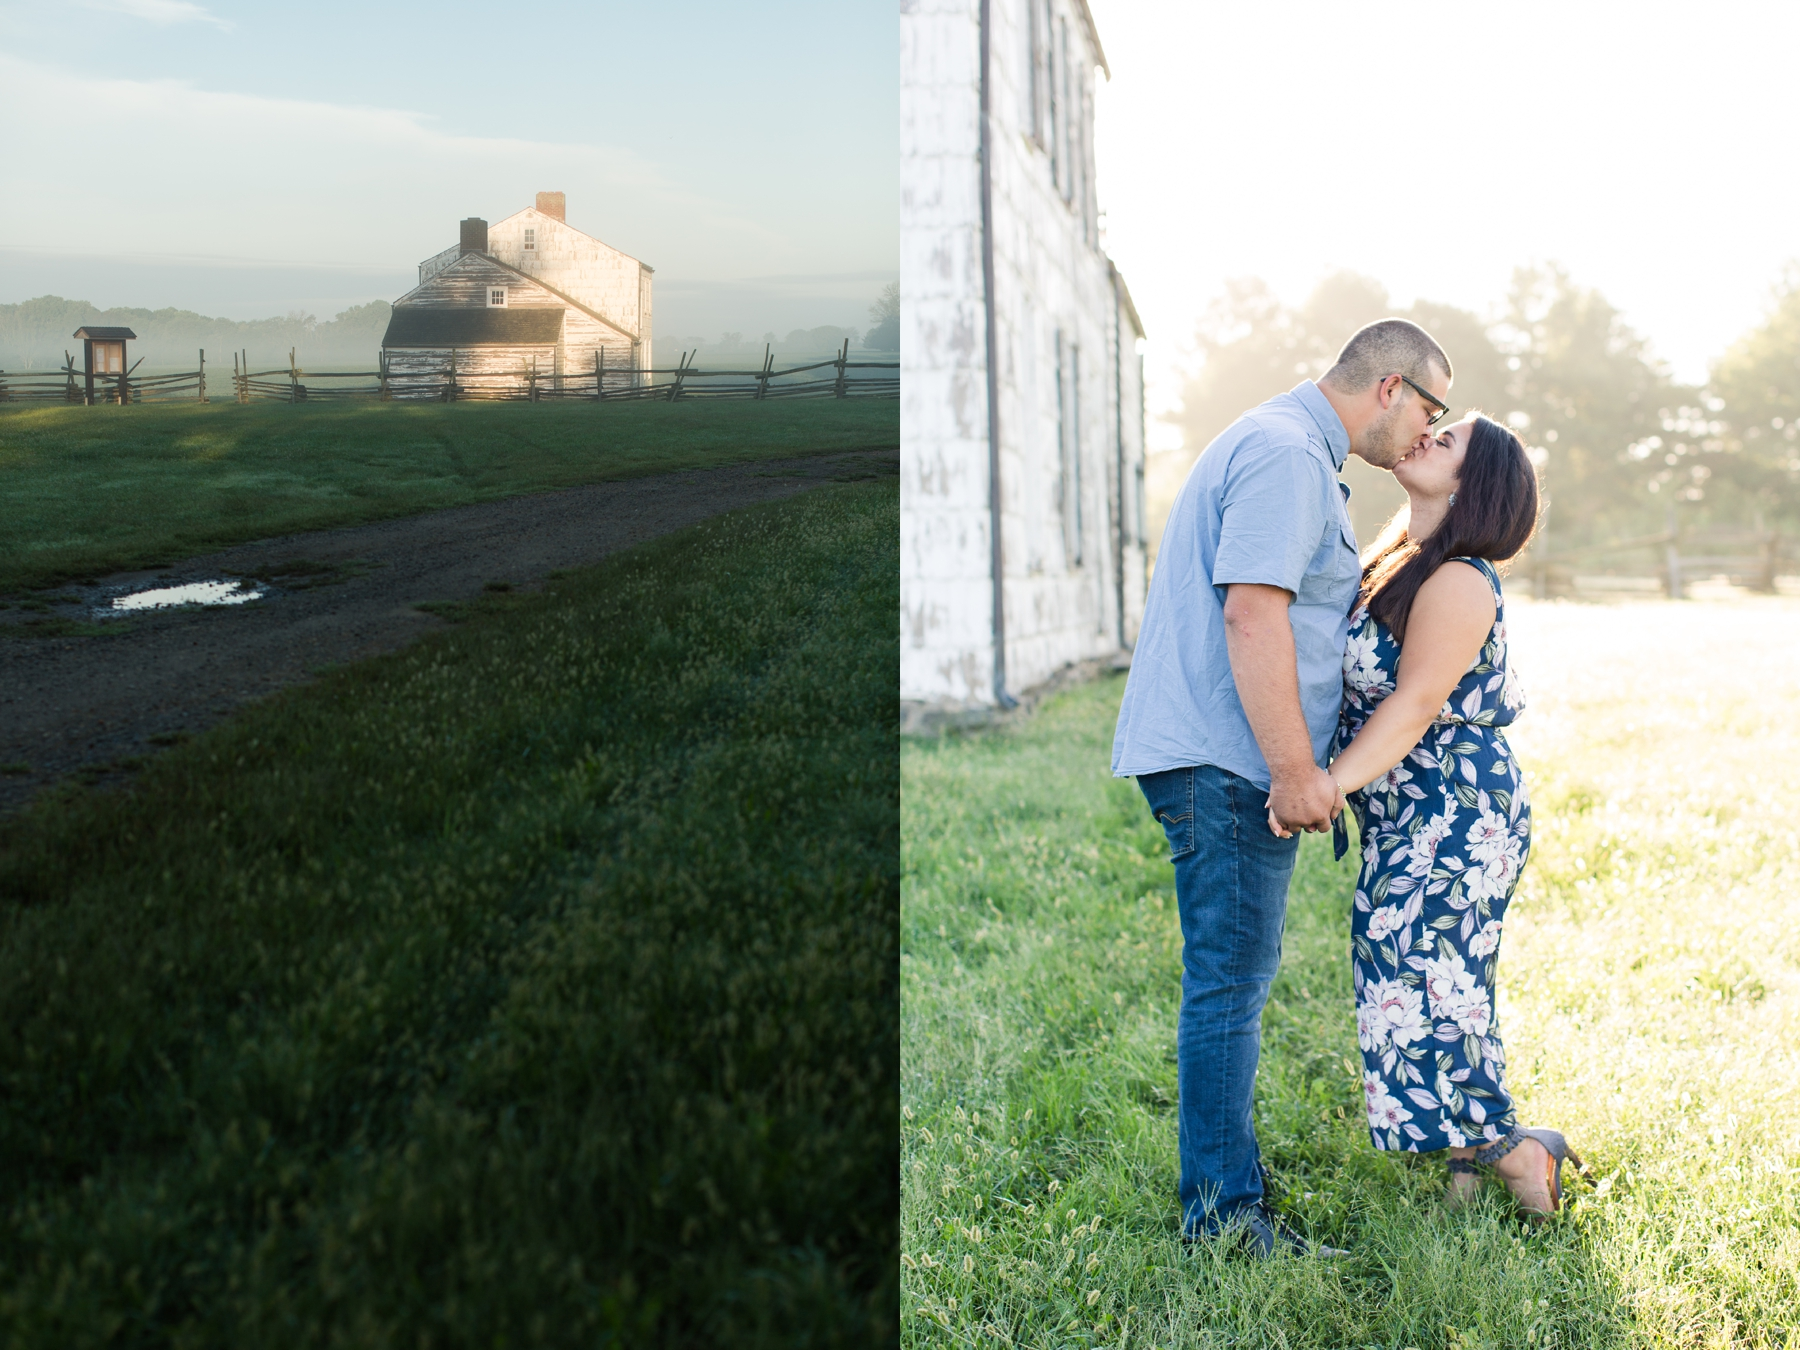 Ciara + Giovanni's Engagement Photography at the Historical Craig House